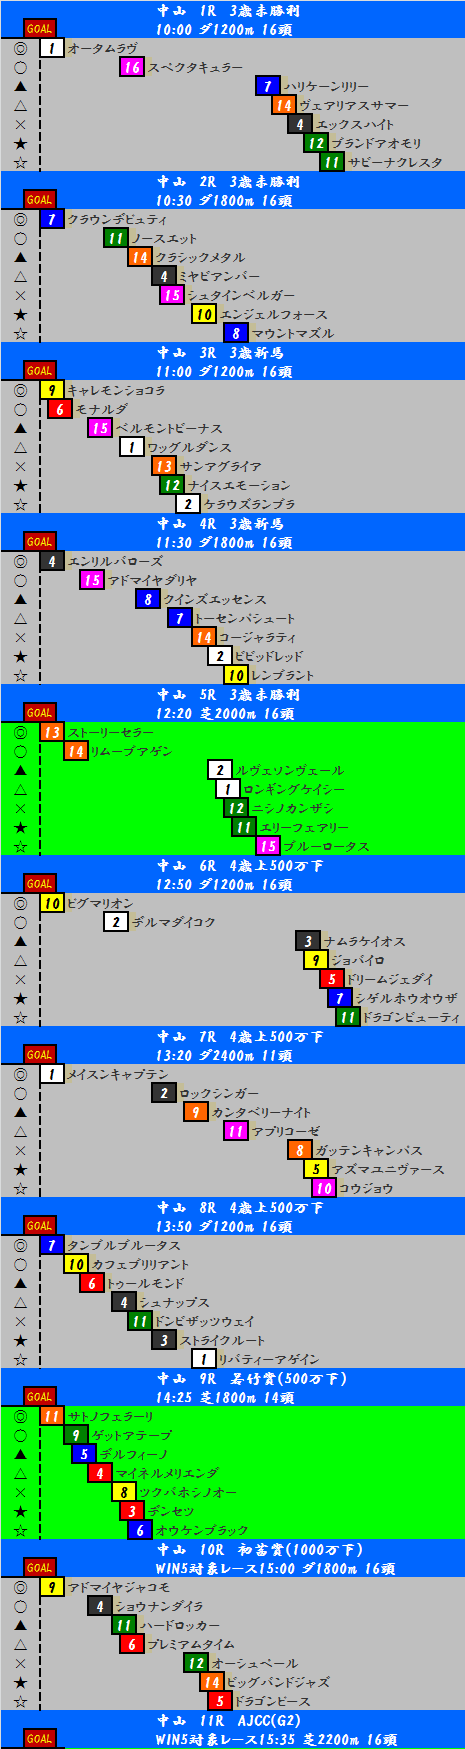 201401261.png